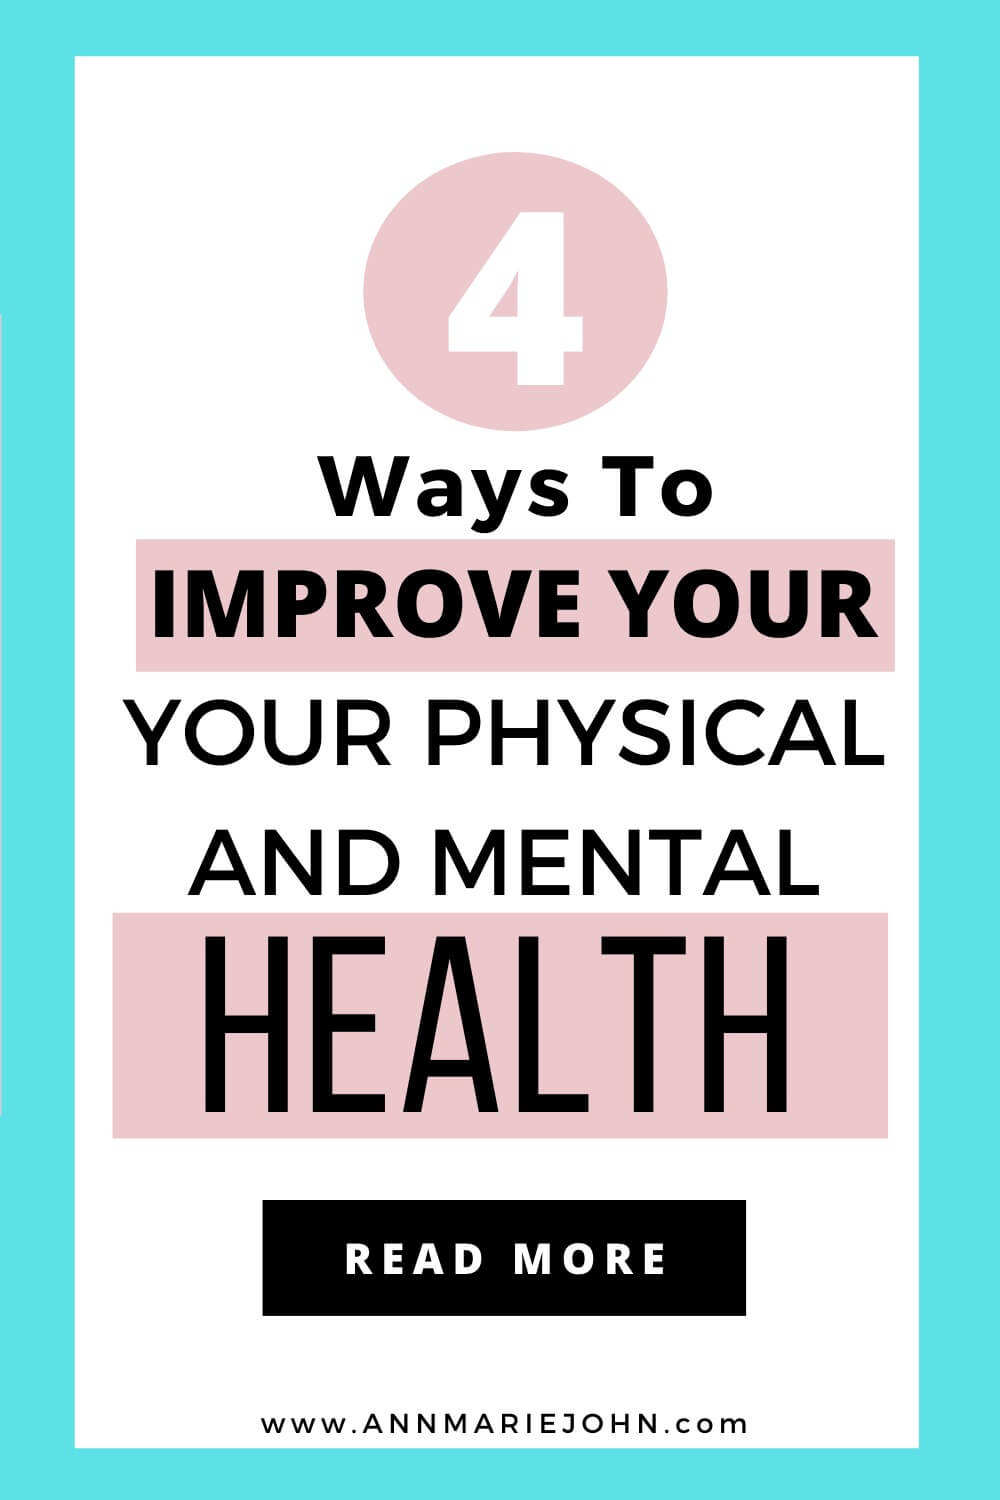 Ways To Improve Your Physical And Mental Health